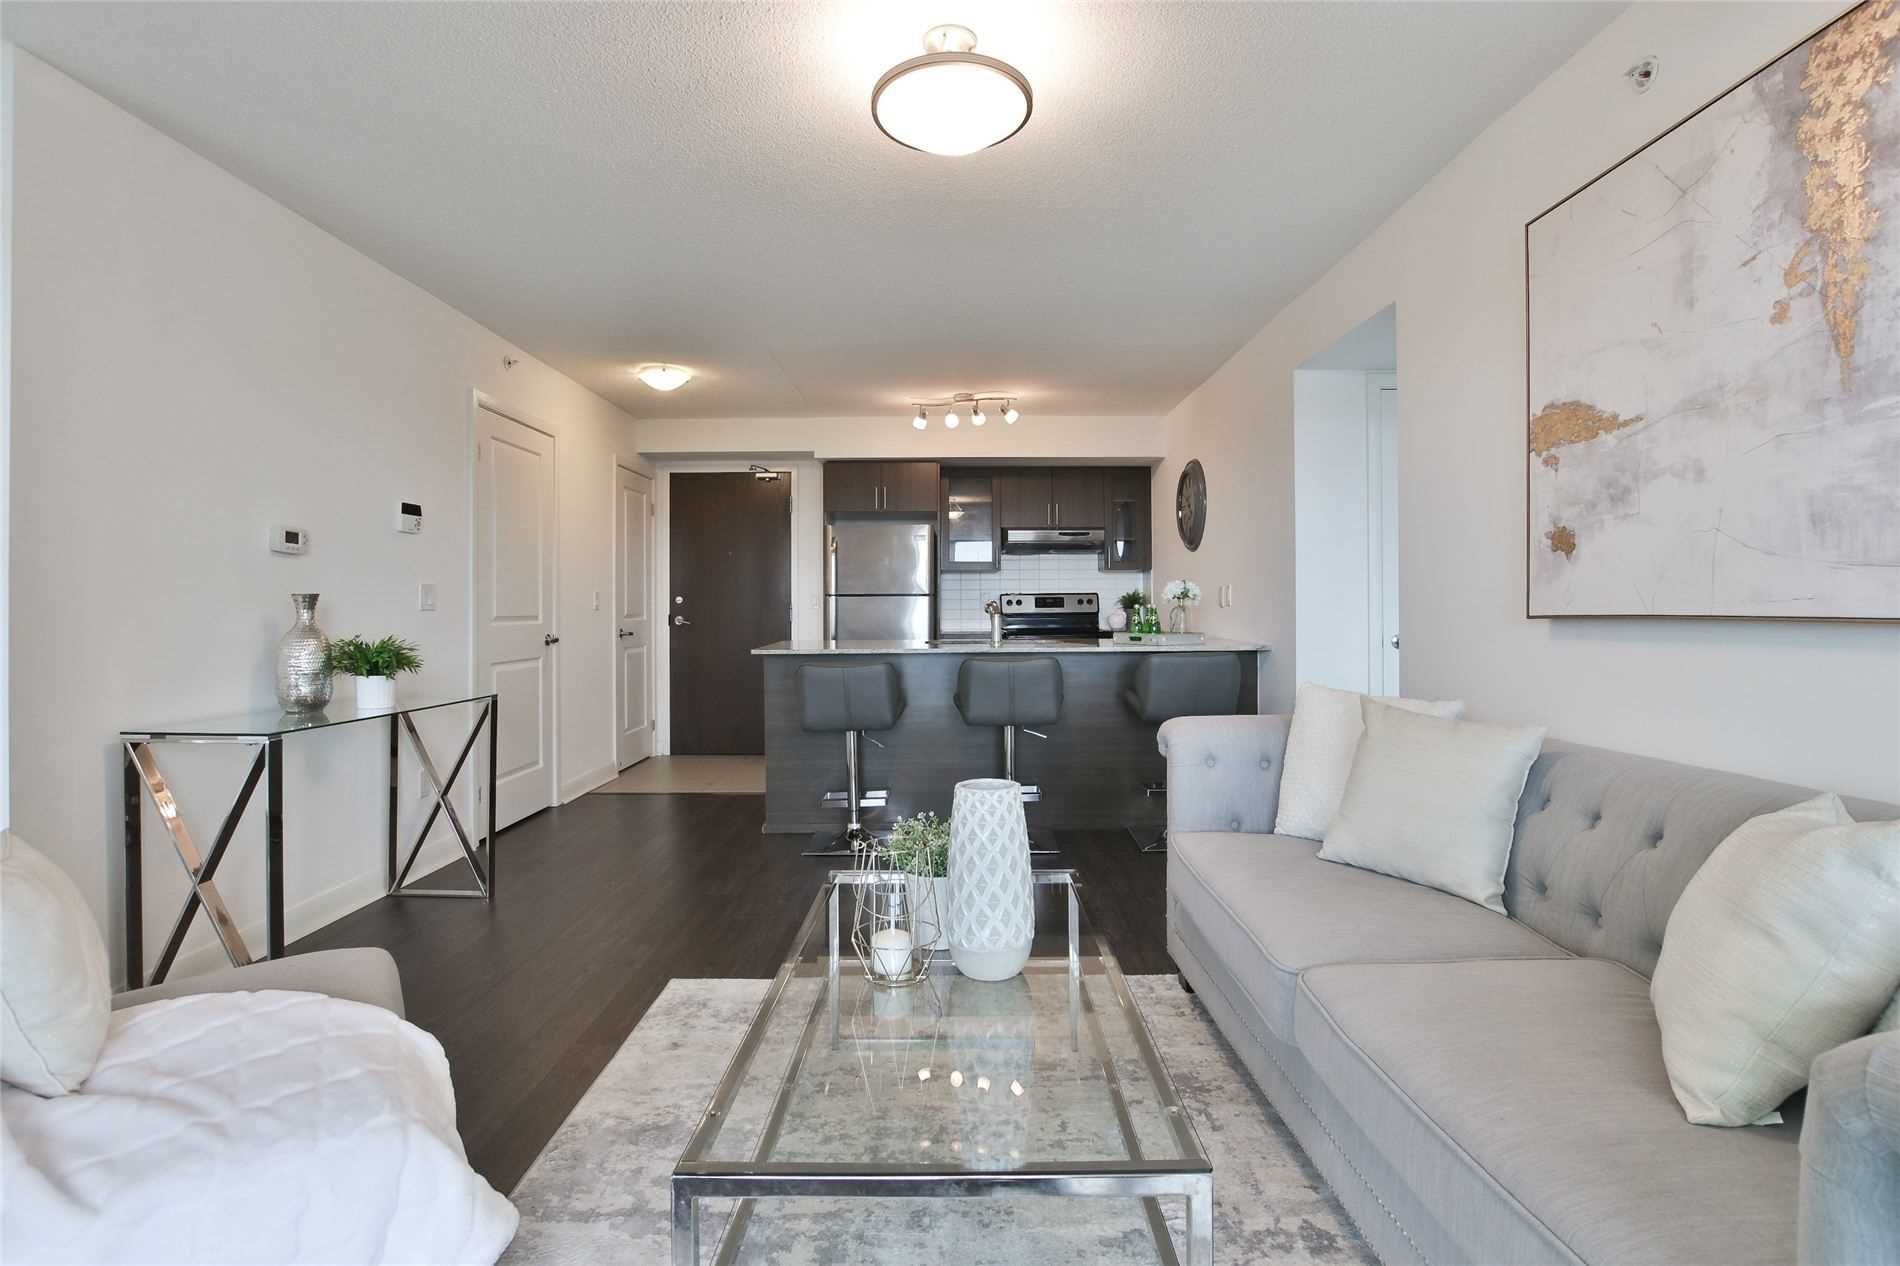 209 - 75 Norman Bethune Ave - Beaver Creek Business Park Condo Apt for sale, 2 Bedrooms (N5305489) - #5